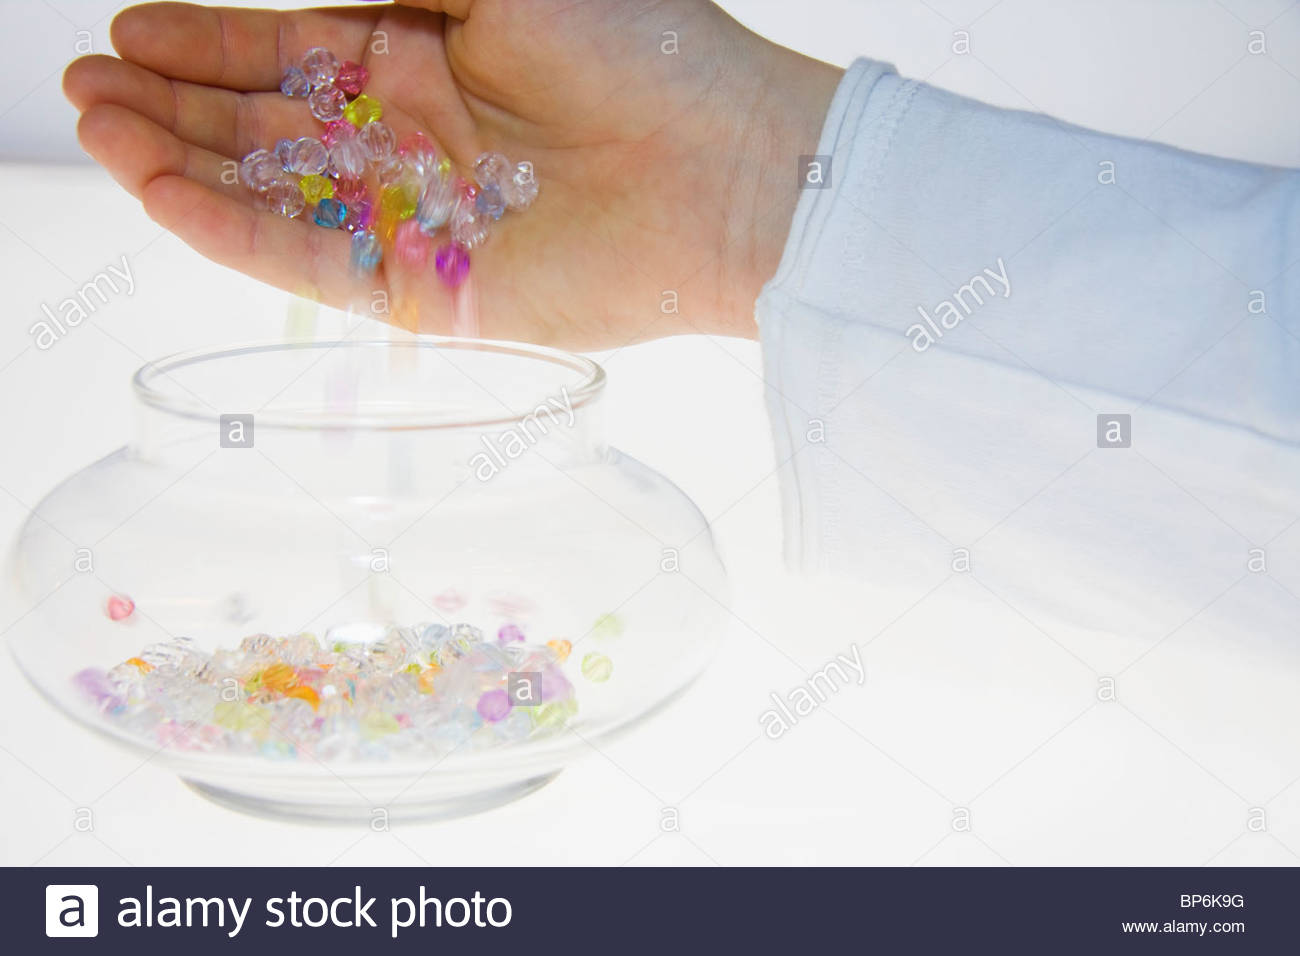 A person pouring colored beads into a jar - Stock Image